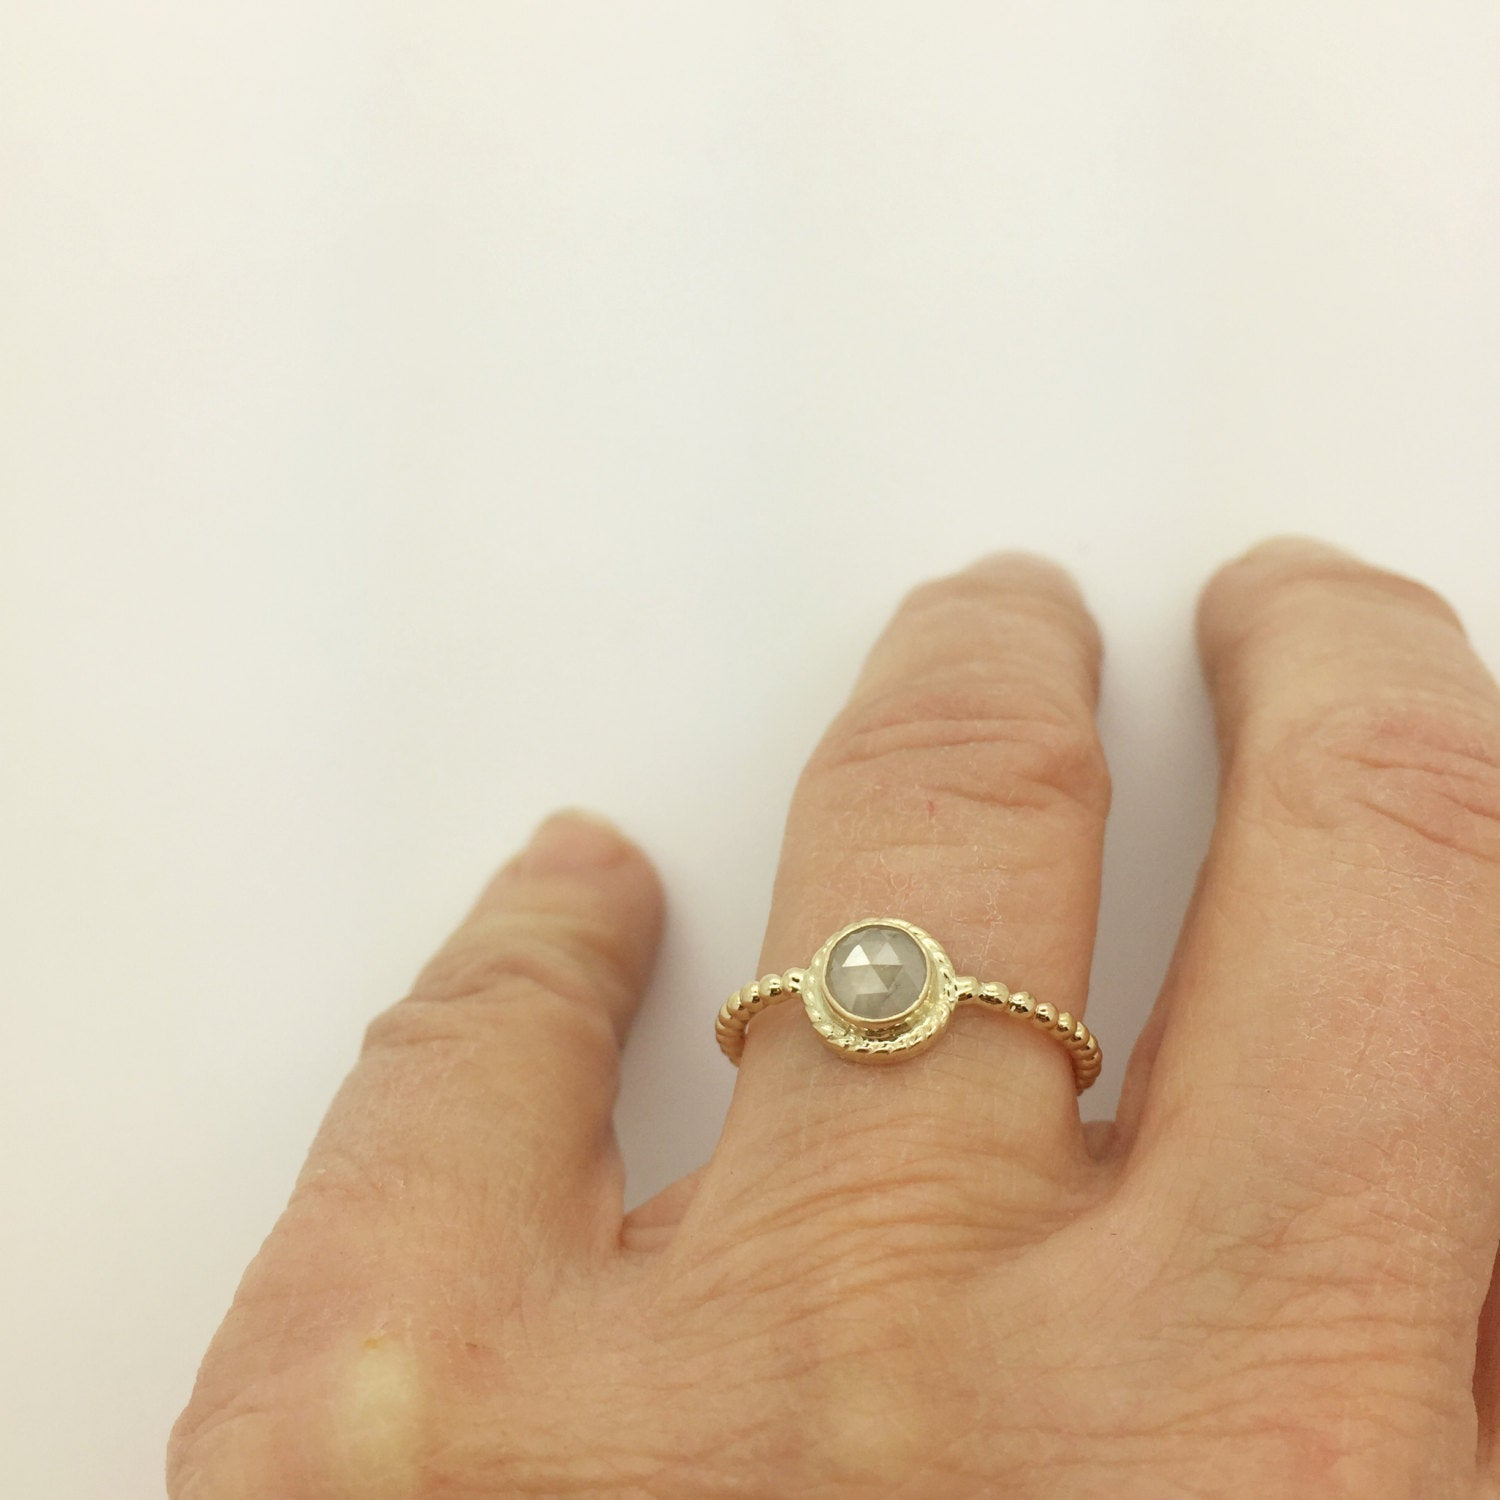 Diamond and 14k ring, Gold ring with Rose Cut Diamond, 14k gold band with white diamond